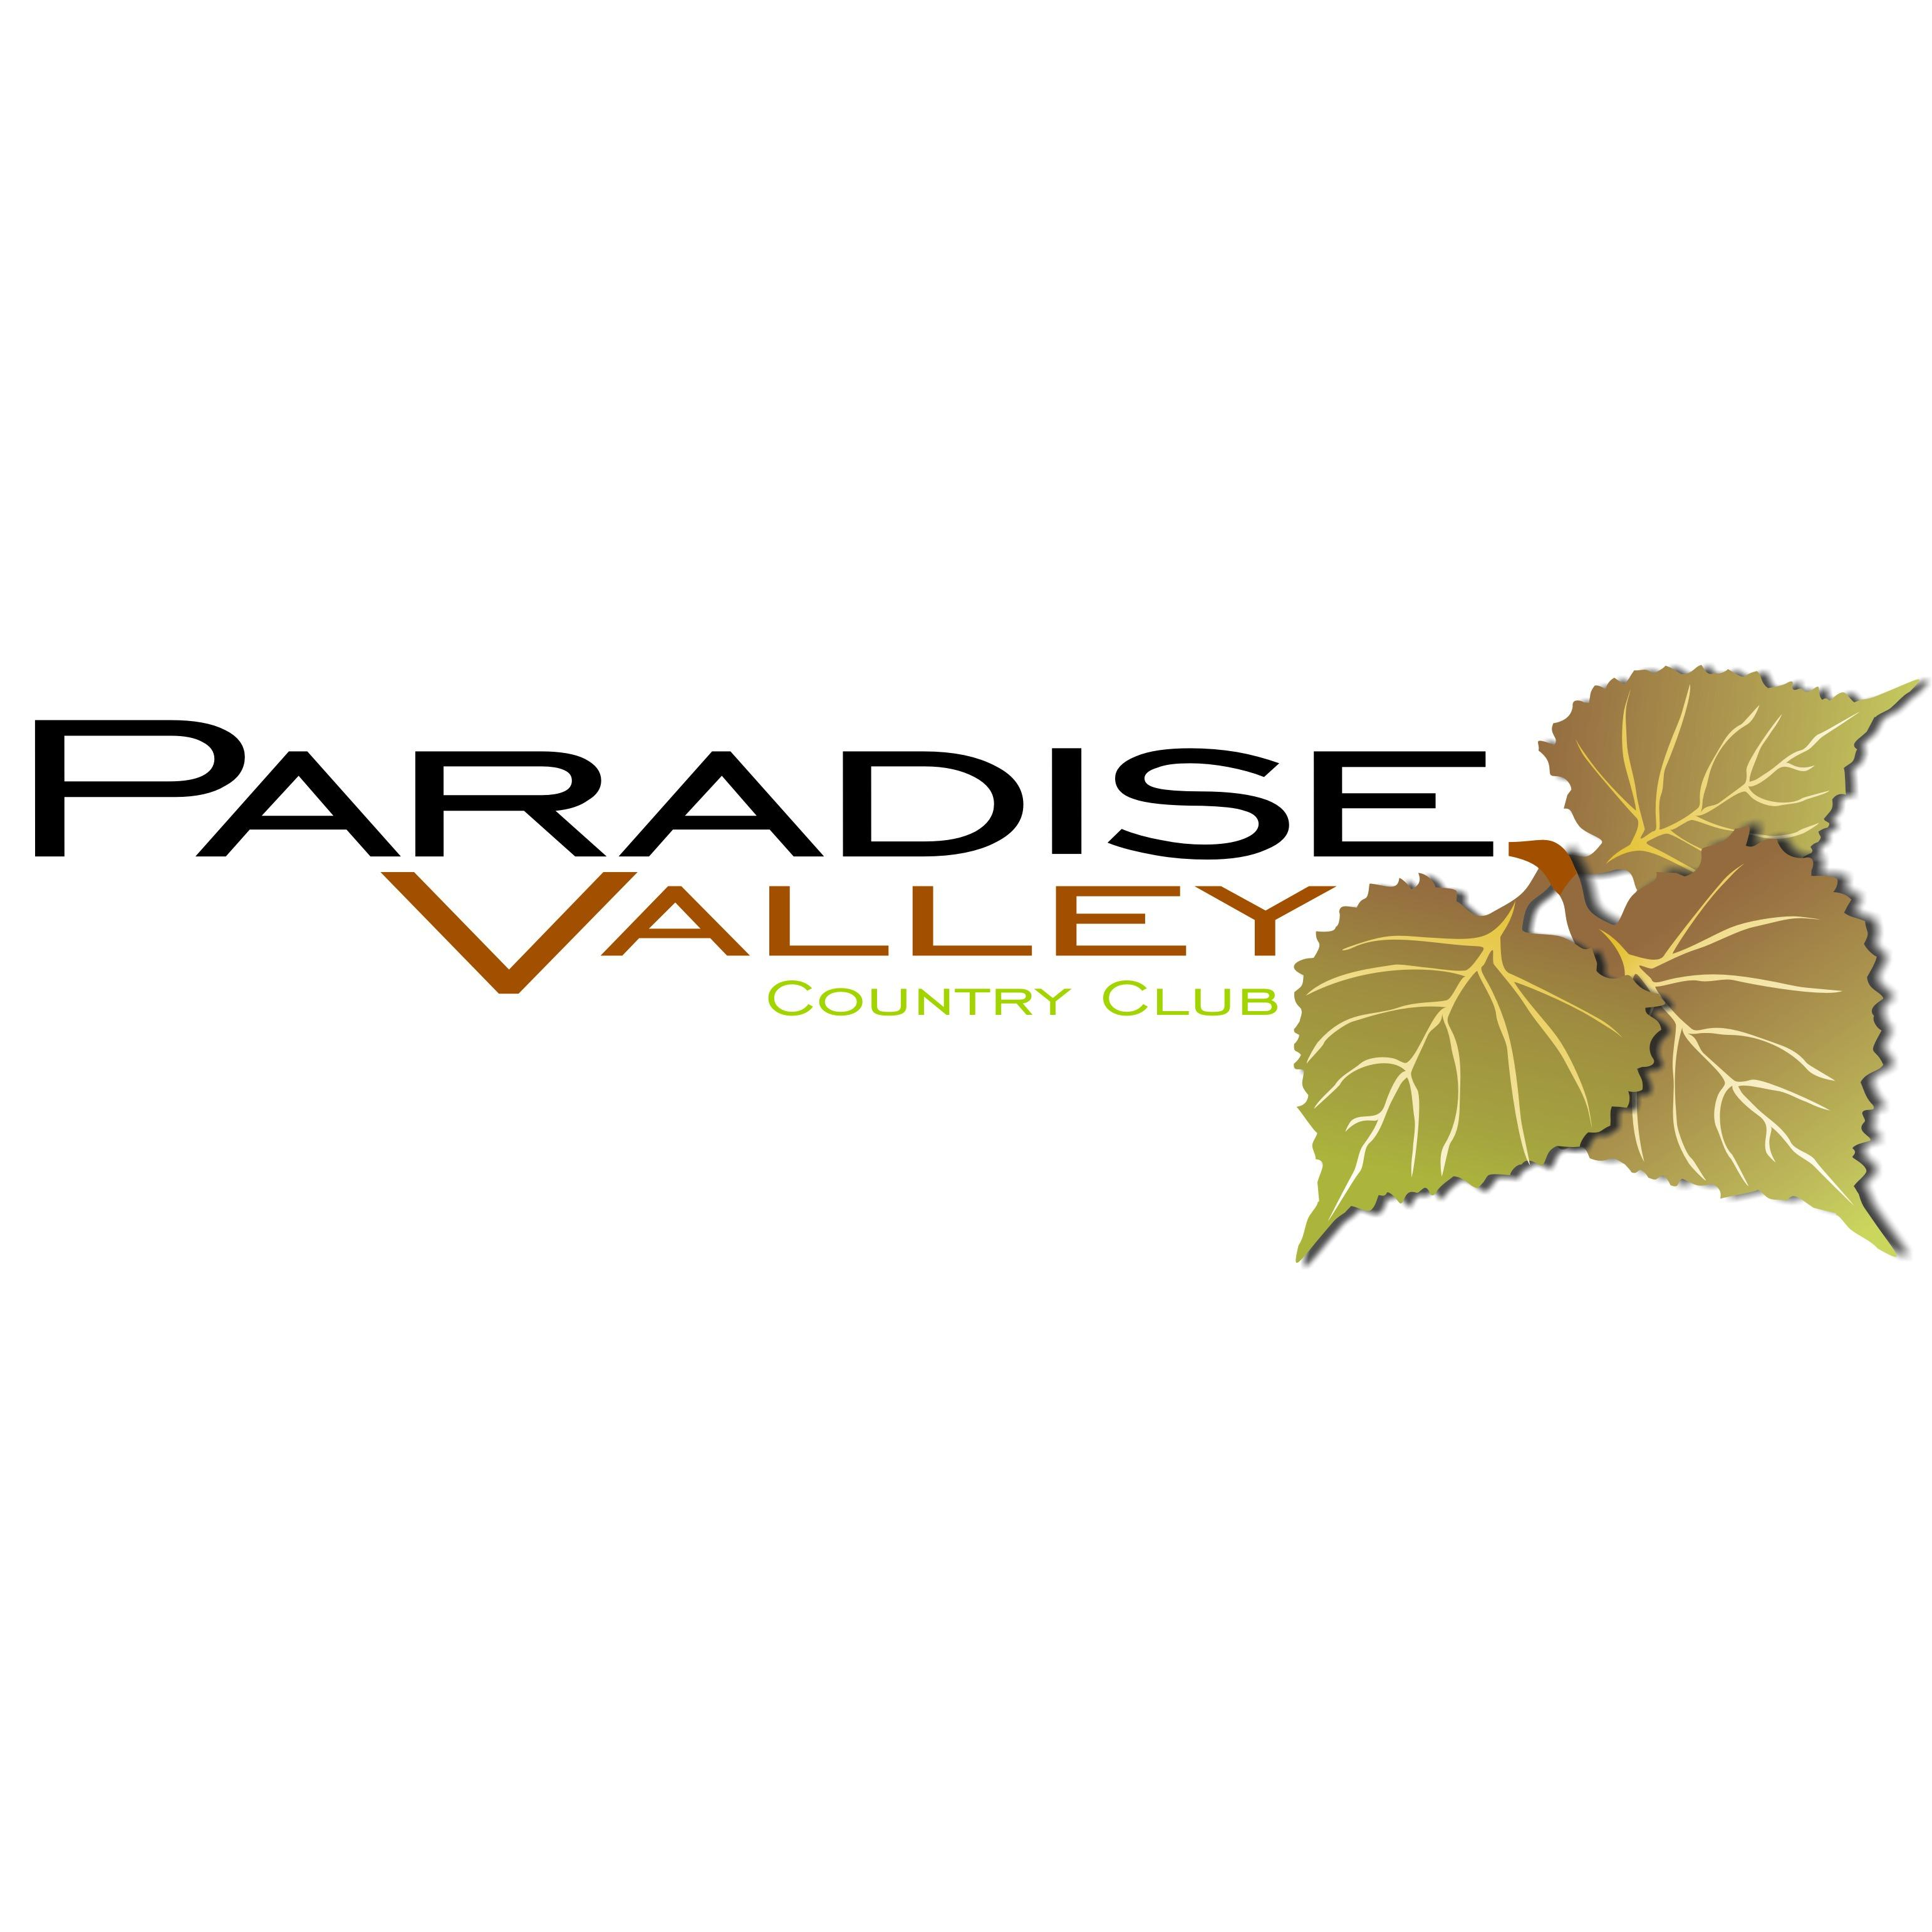 Paradise Valley Country Club image 8